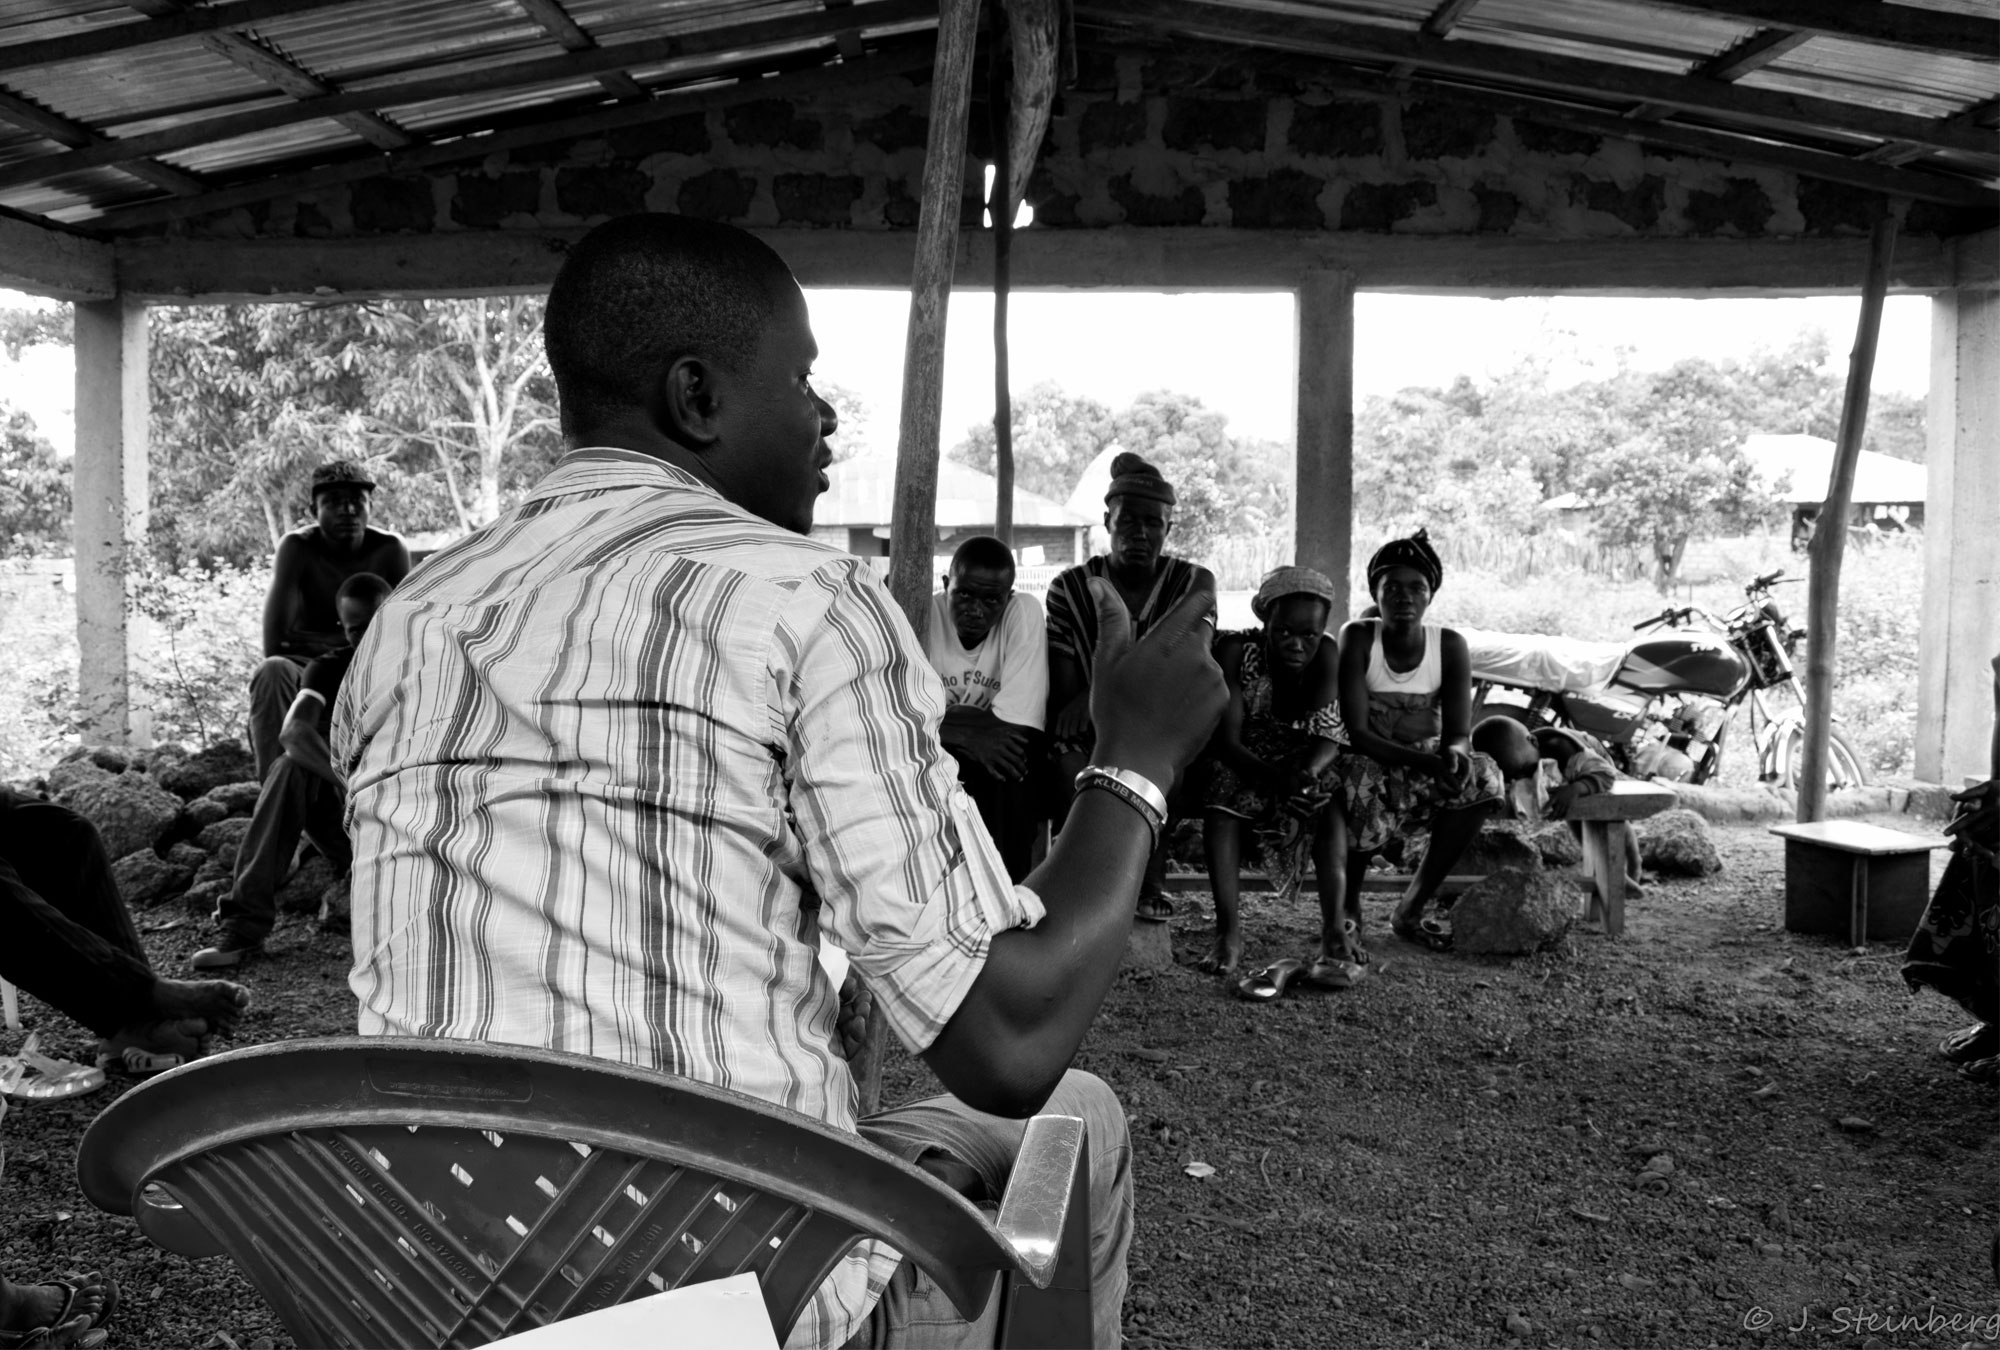 Man leads a discussion under an outdoor meeting tent